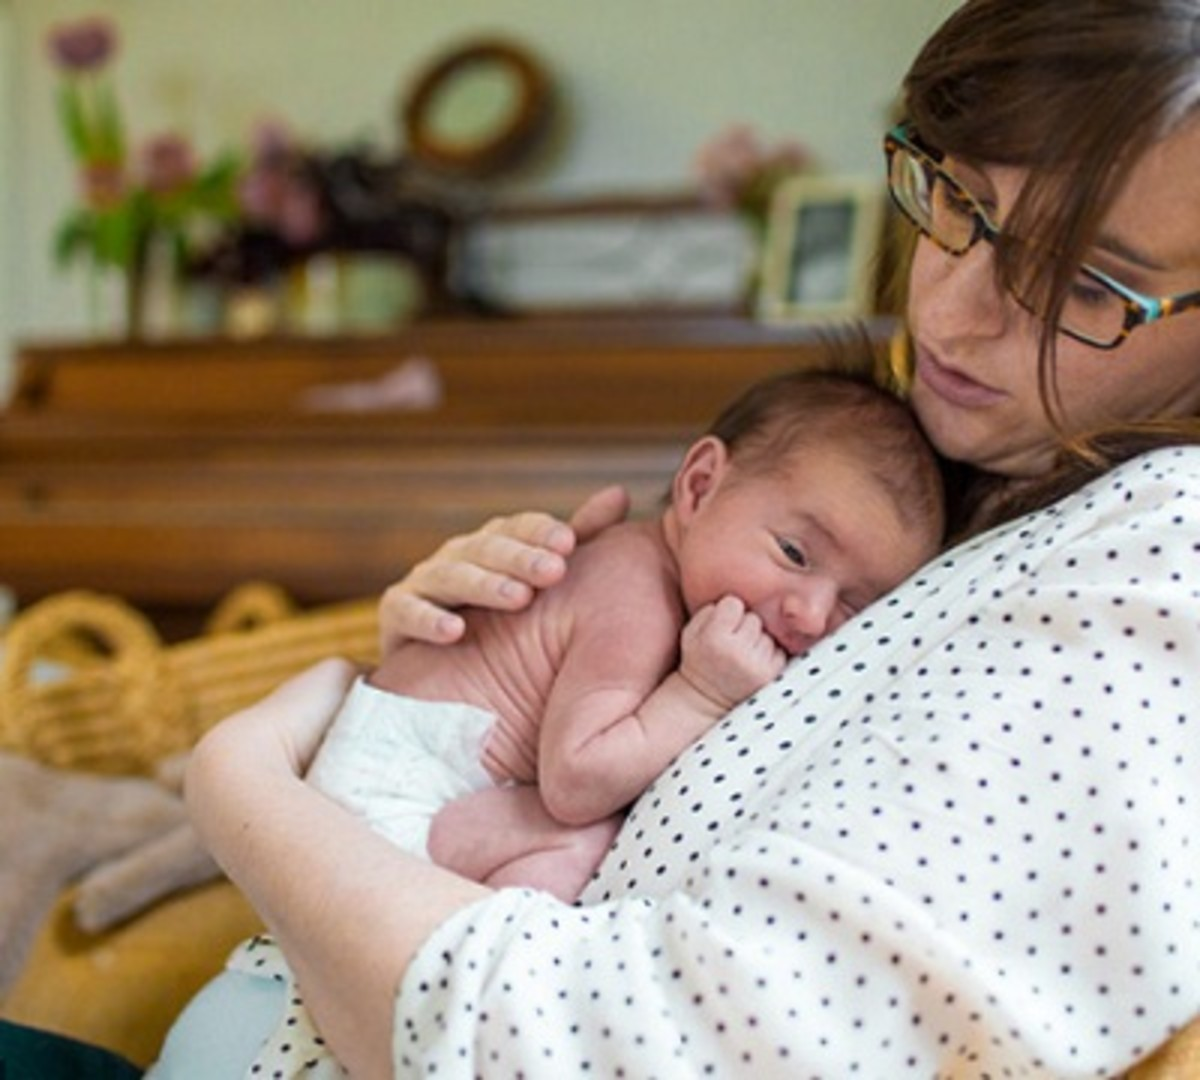 why-is-your-newborn-baby-crying-know-the-reasons-and-the-ways-to-soothe-them